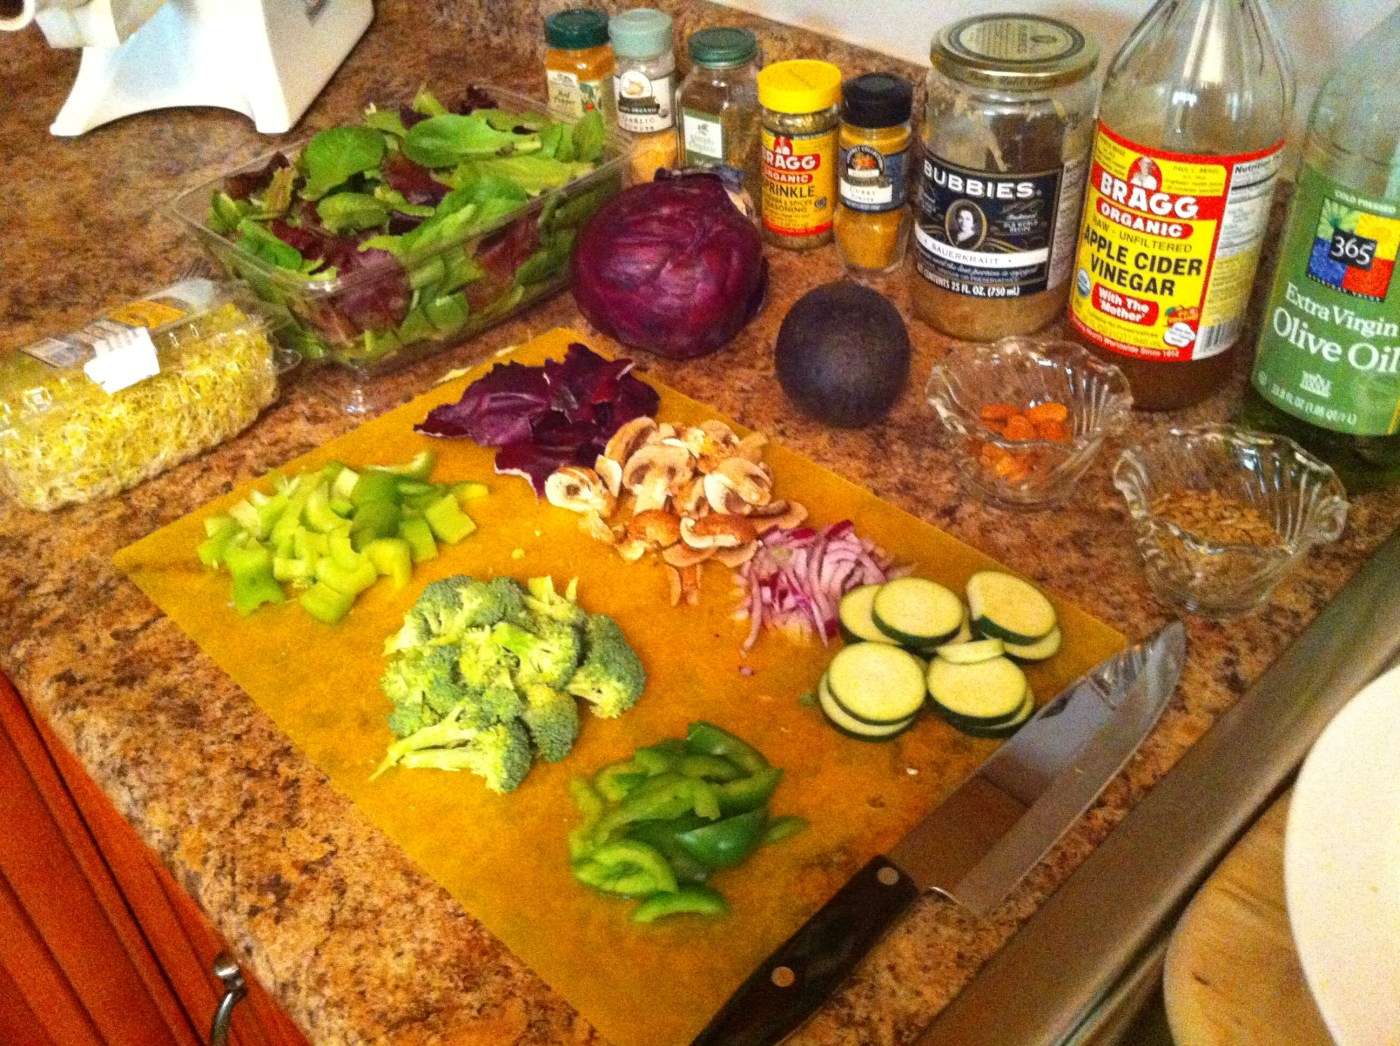 Giant Cancer-Fighting Salad Video